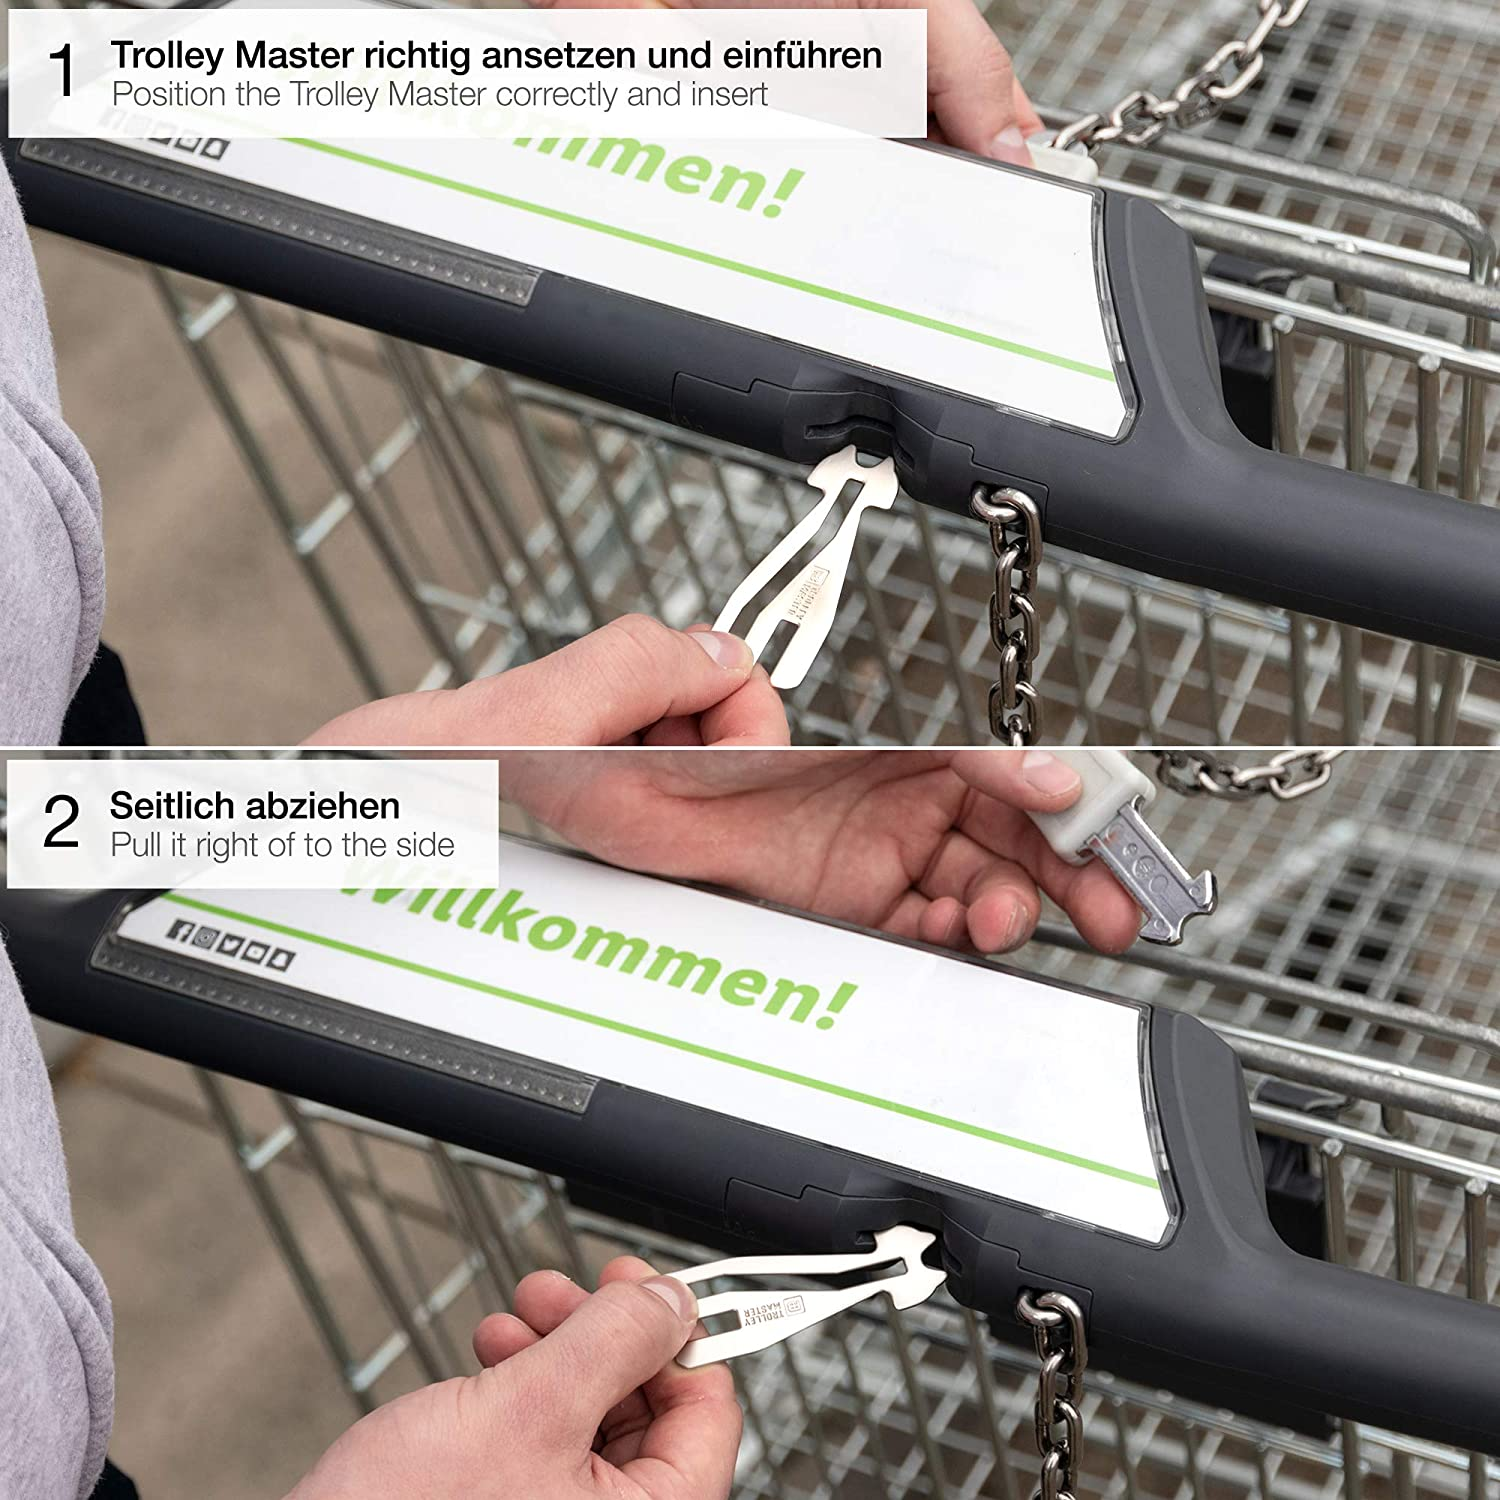 Fabach Trolley Master Shopping Trolley Release for All Shopping Cart Opens Front Loader and Side Drawer Systems Removable Shopping Trolley Token Metal Key Ring